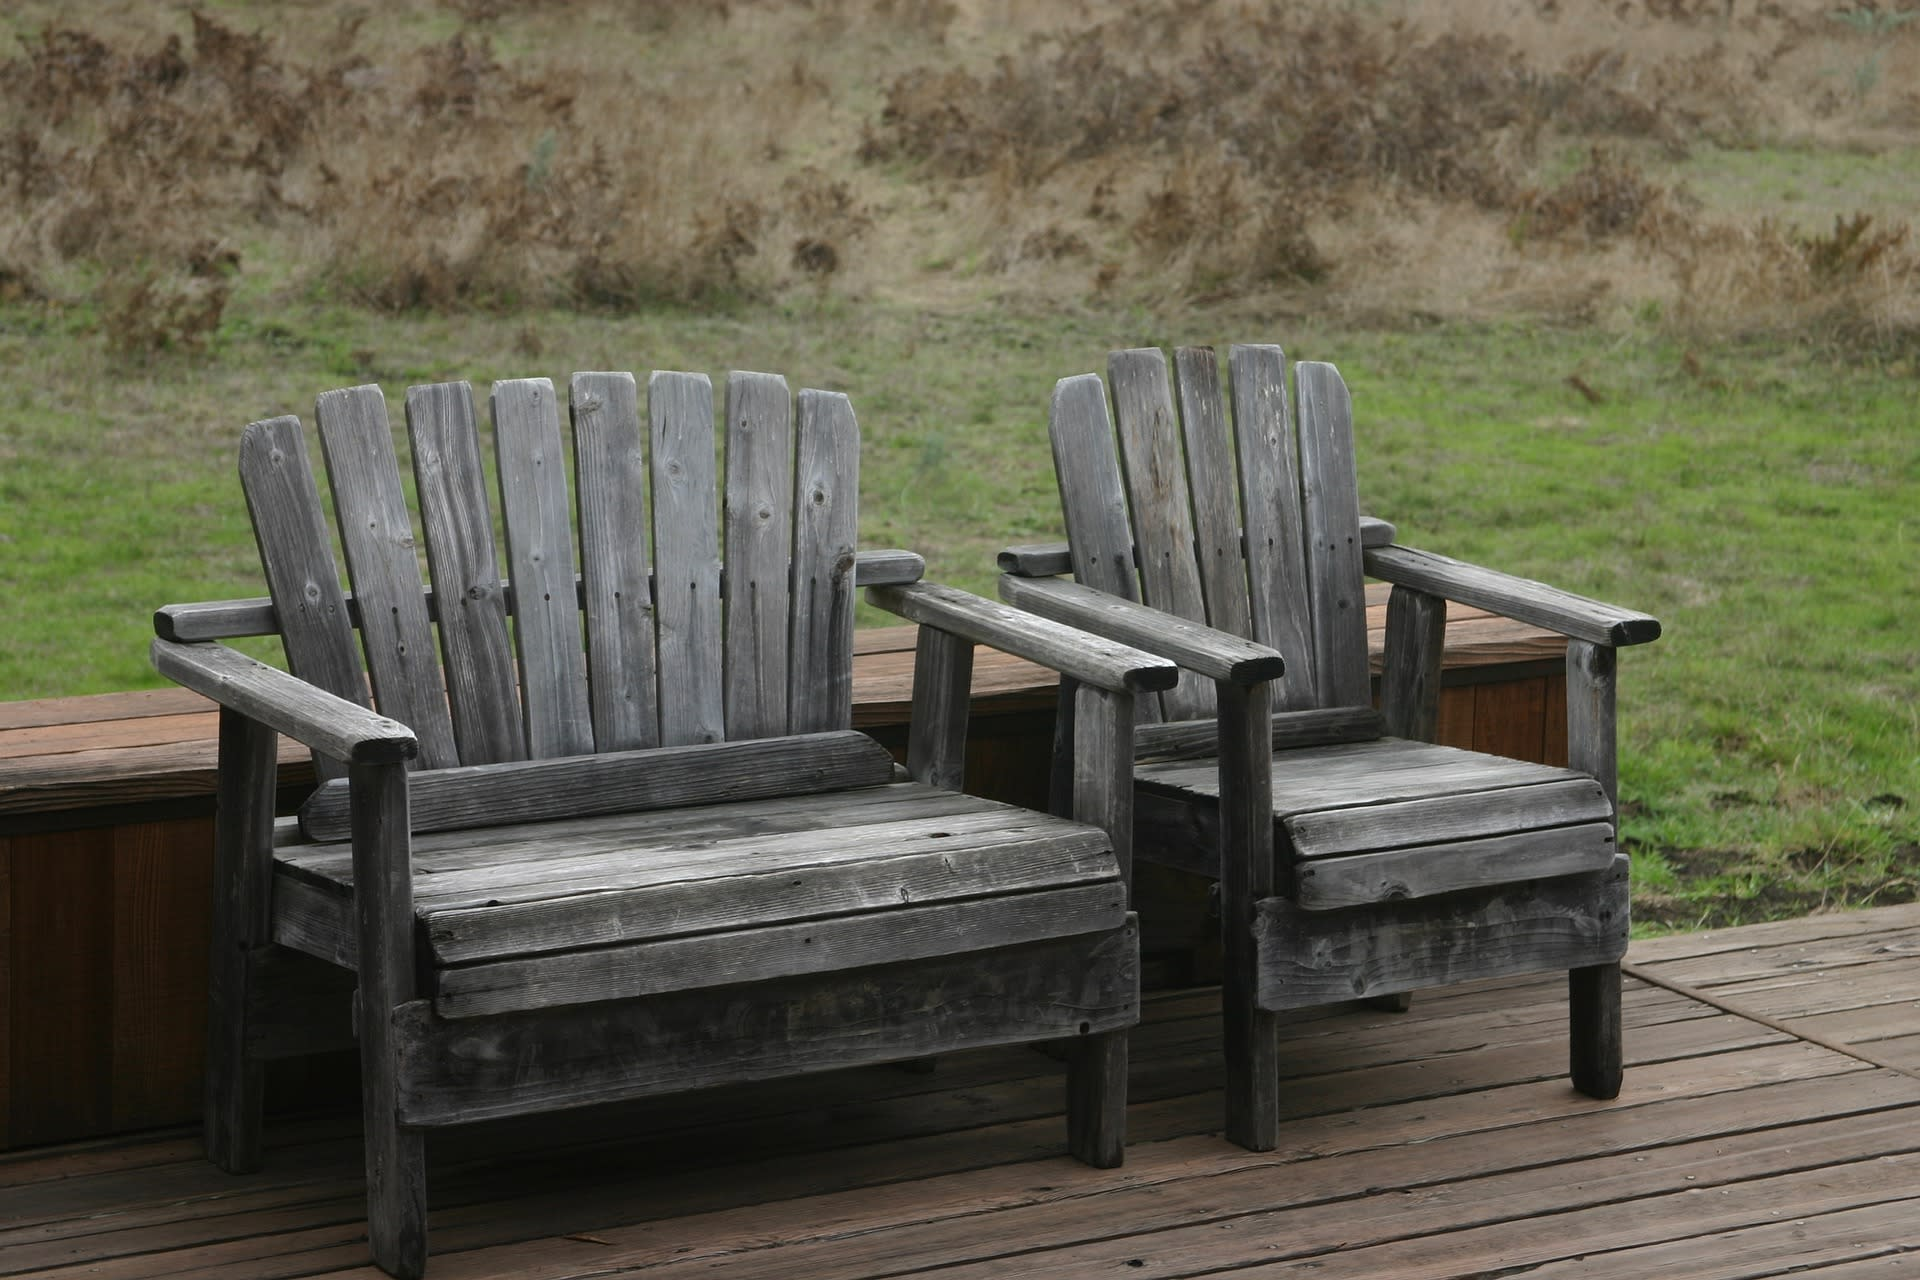 How to protect your outdoor furniture during winter